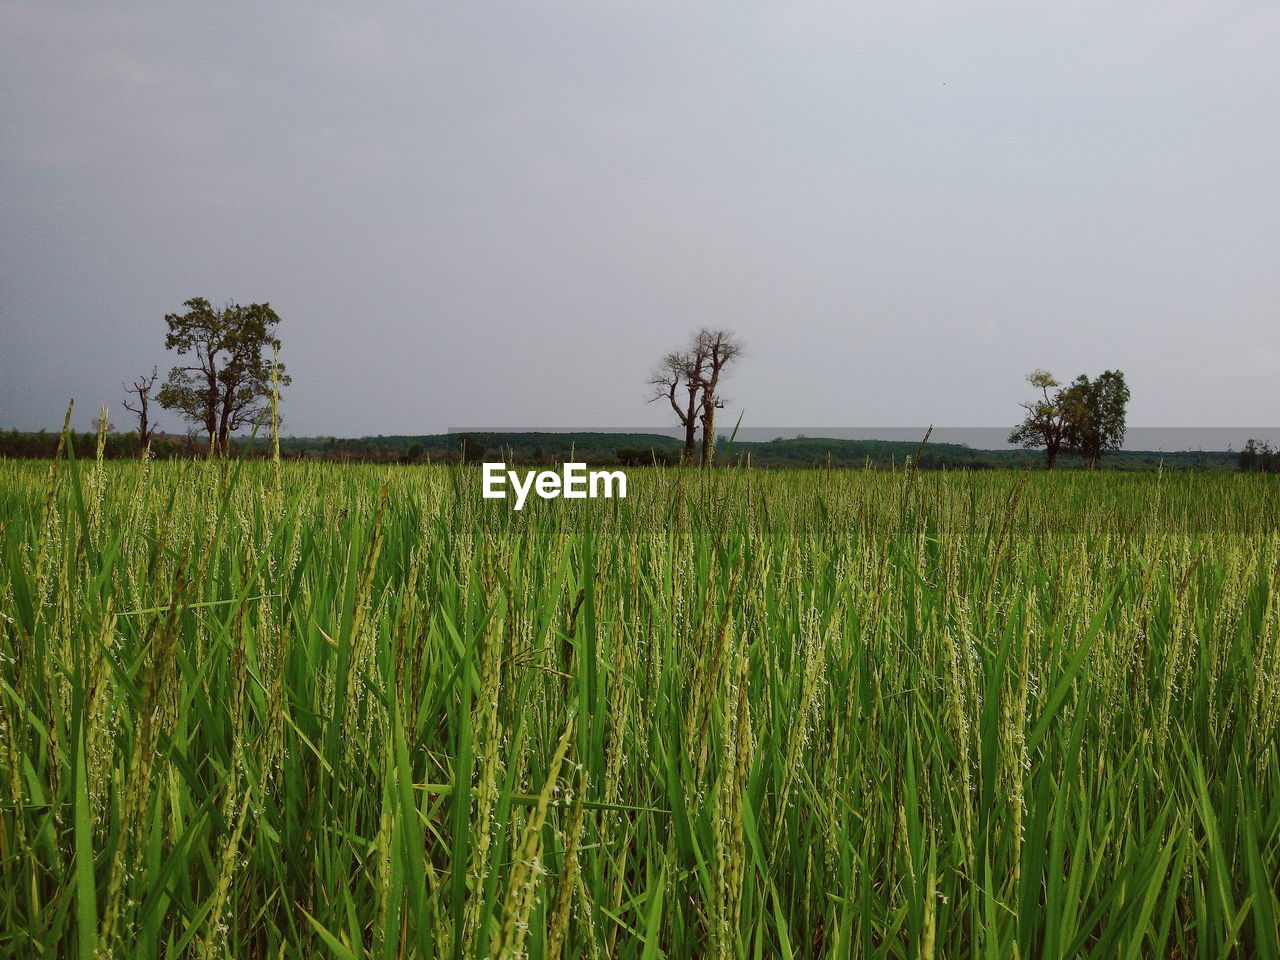 plant, growth, field, land, landscape, agriculture, green color, rural scene, sky, beauty in nature, tranquility, environment, crop, tree, tranquil scene, scenics - nature, nature, farm, cereal plant, day, no people, outdoors, plantation